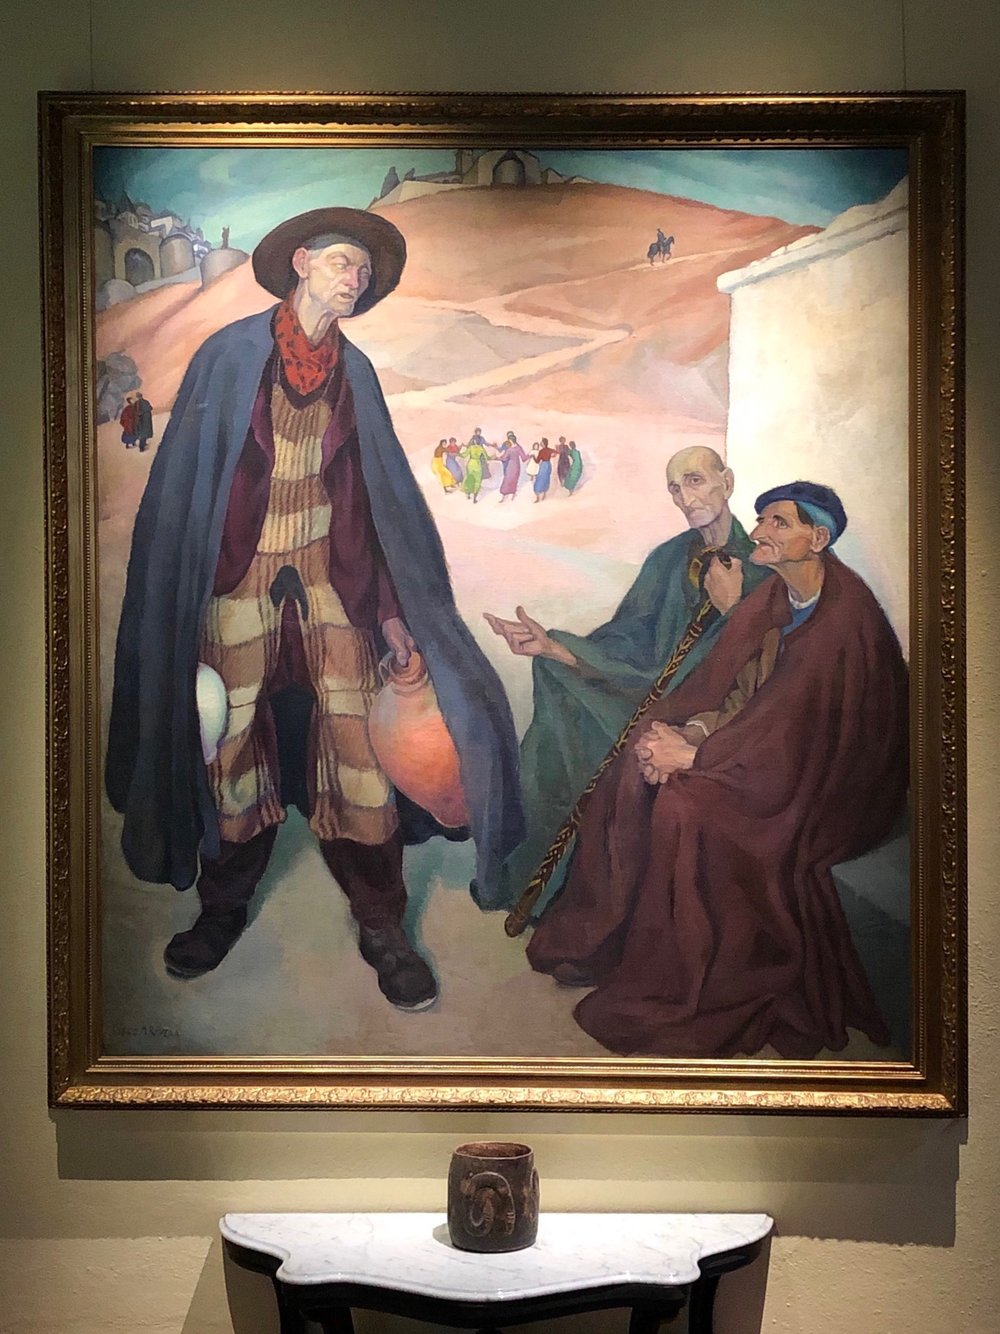 In the Outskirts of Toledo (The Old Men)  reflects the influence of El Greco, whose work Rivera studied while living in Spain